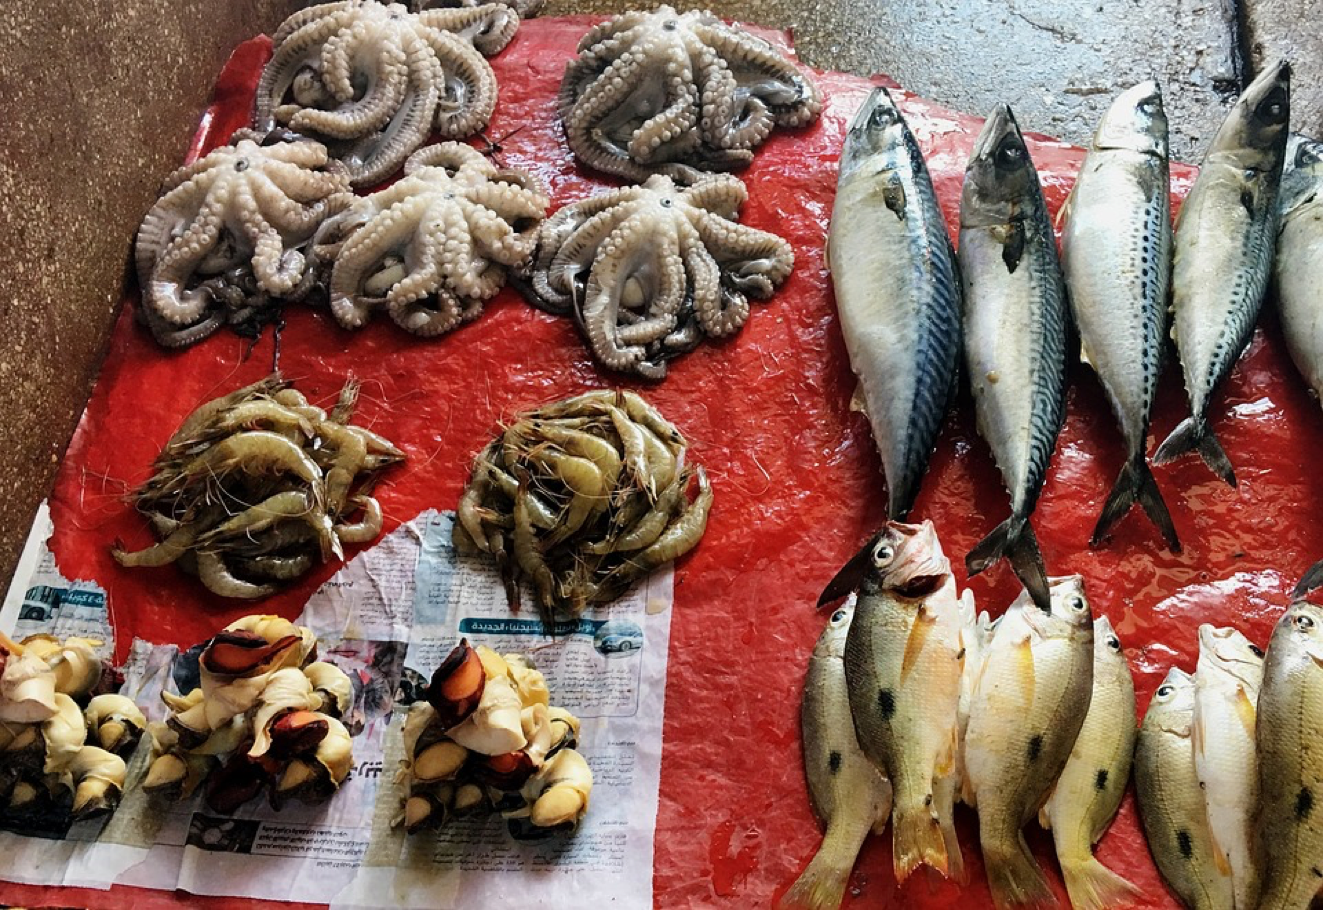 Health - Seafood - Eating Right with Help from A PA